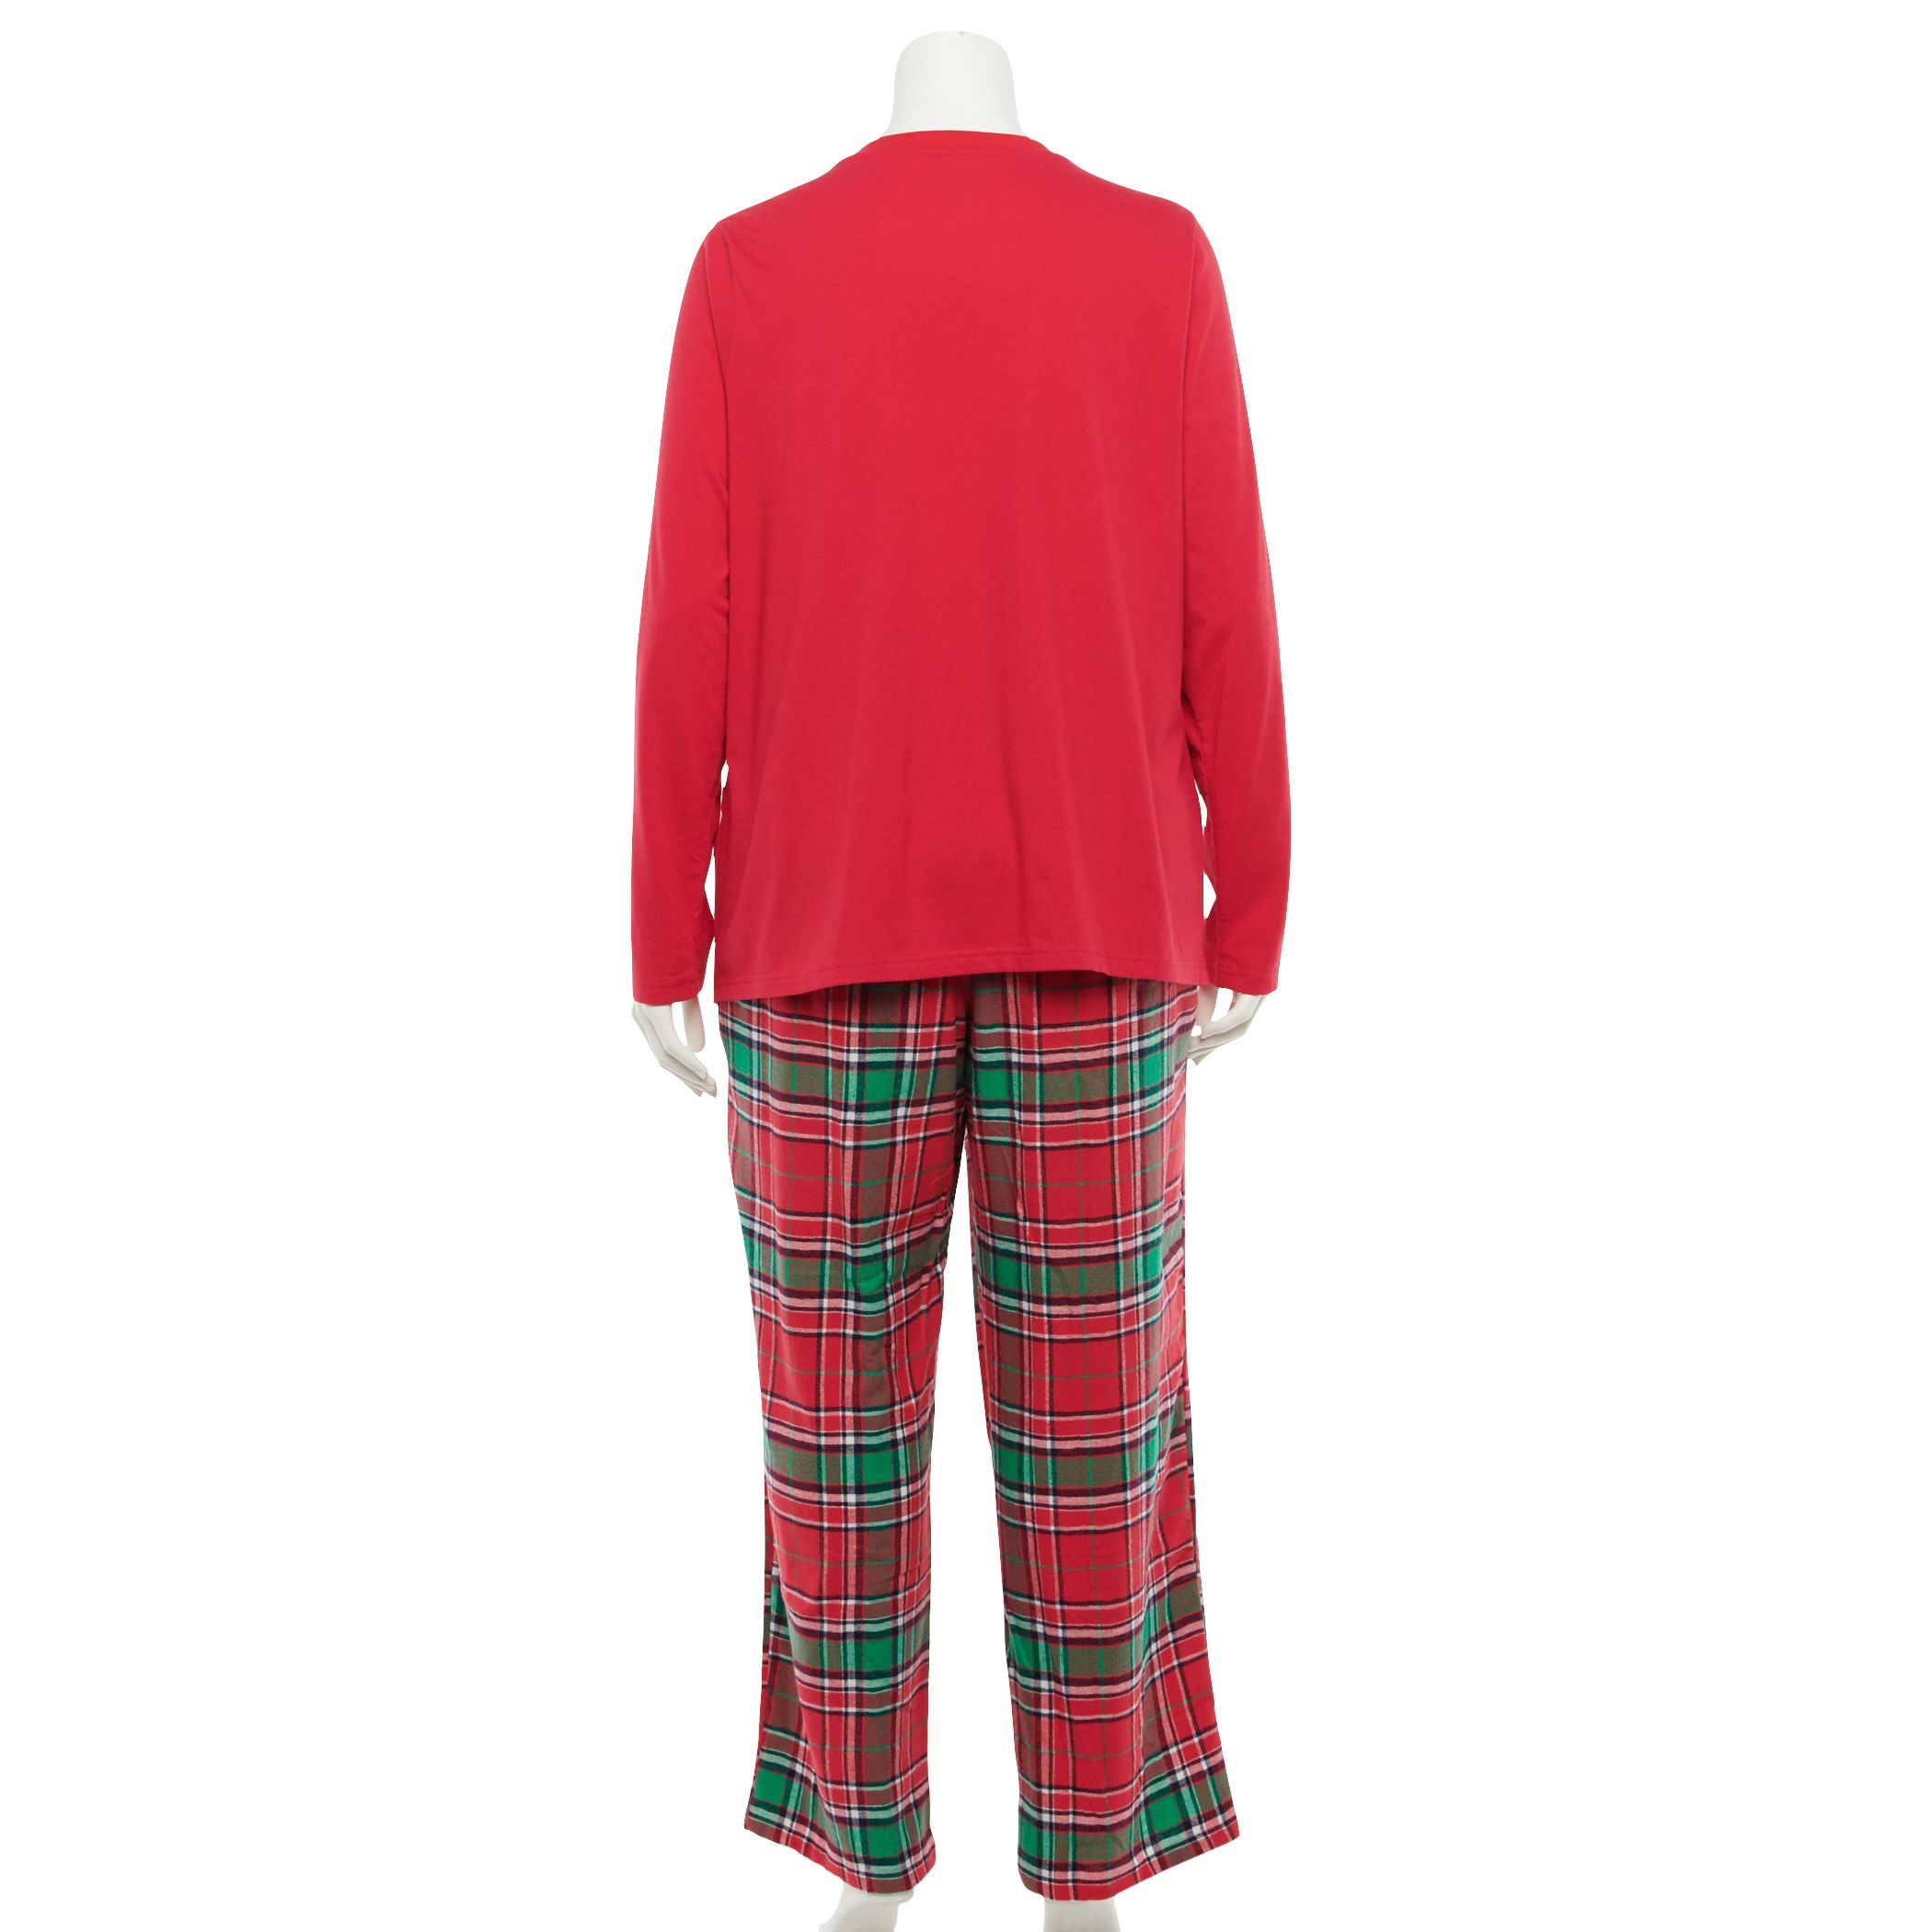 Plus Size Jammies For Your Families® Jingle All The Way Flannel Top & Pants Pajama Set